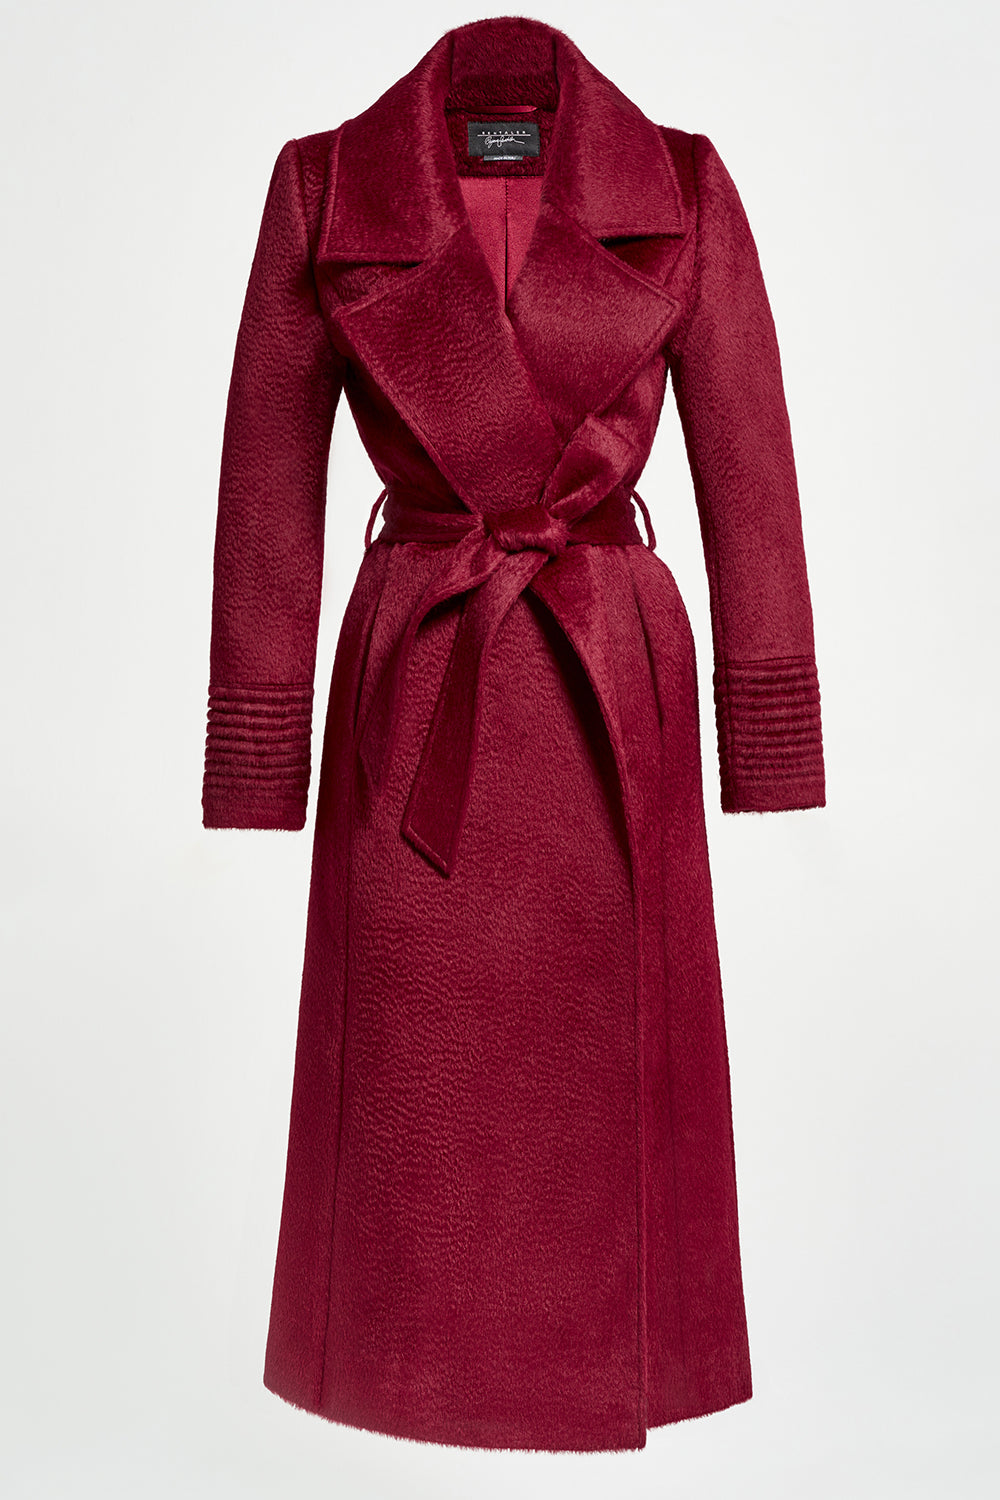 Sentaler Suri Alpaca Long Notched Collar Wrap Coat featured in Suri Alpaca and available in Bordeaux. Seen off model.